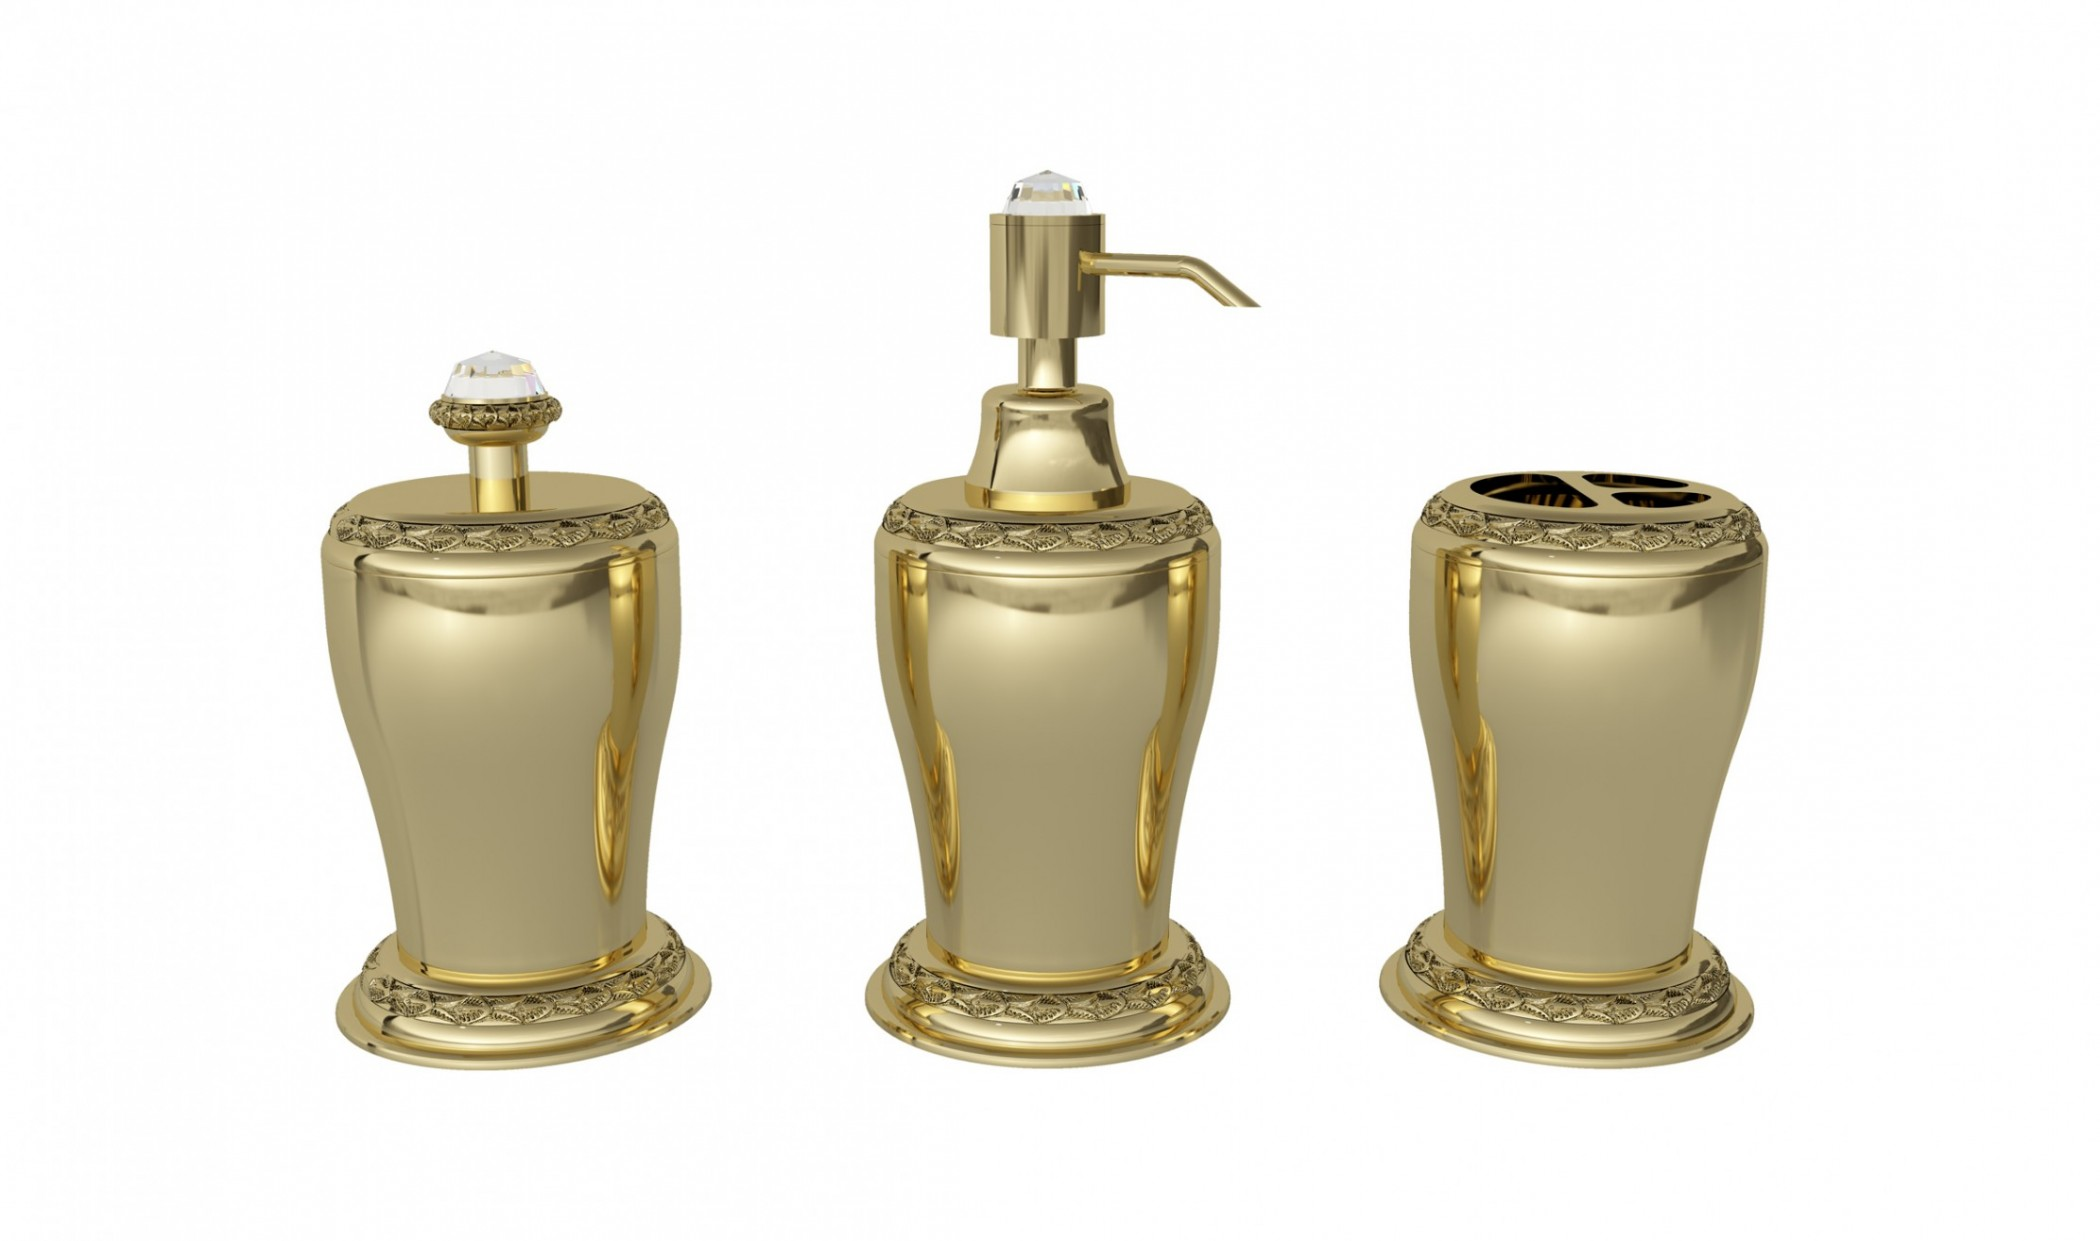 luxury bathroom accessories » Bronces Mestre